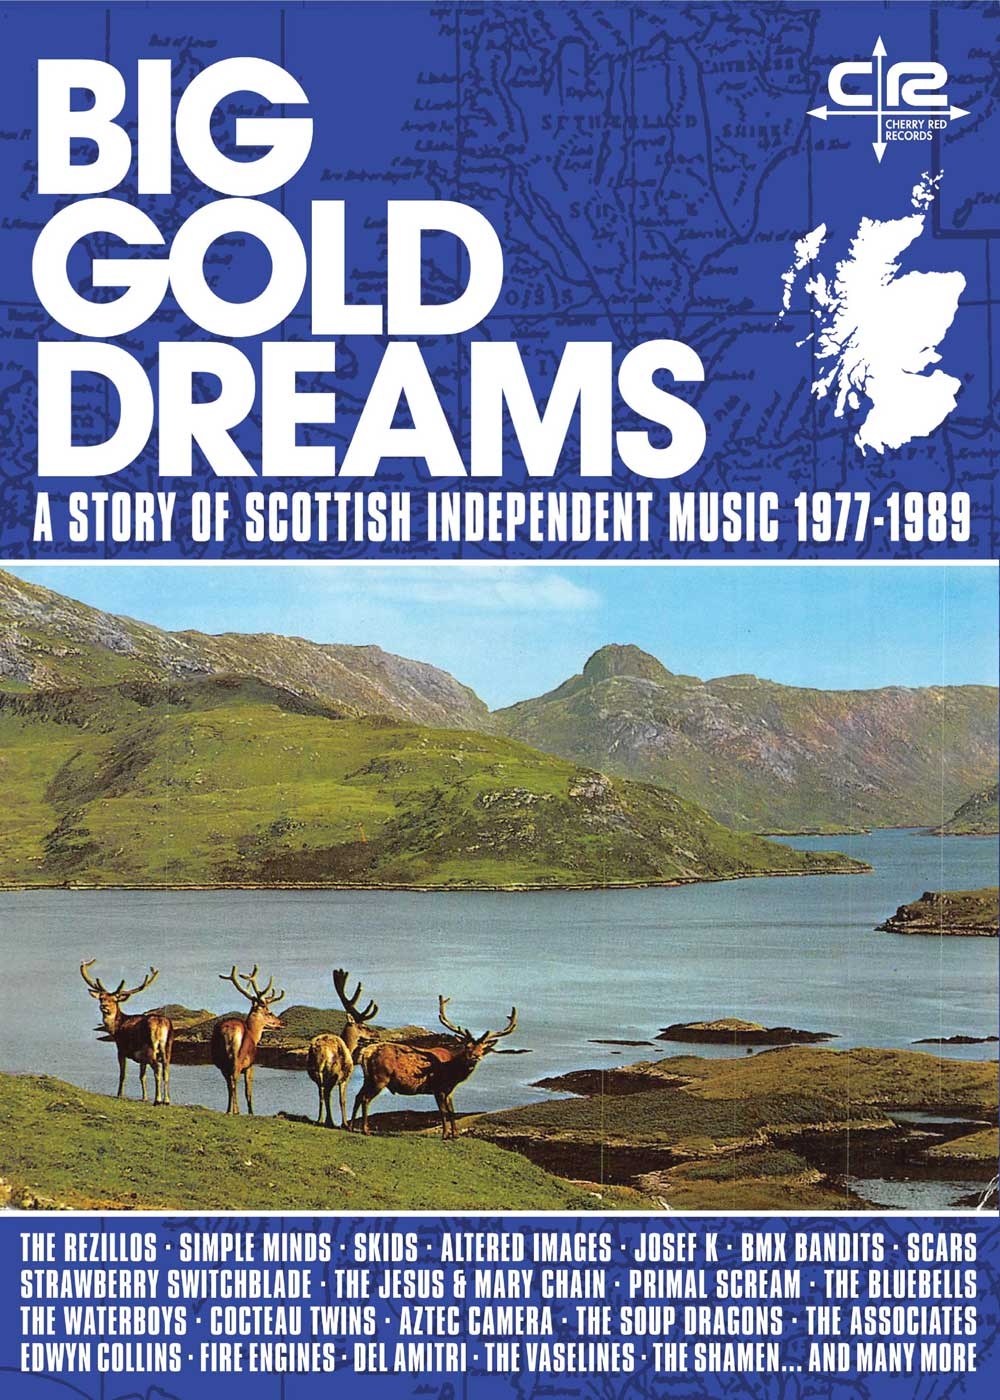 News – Big Gold Dreams: A Story Of Scottish Independent Music 1977-1989